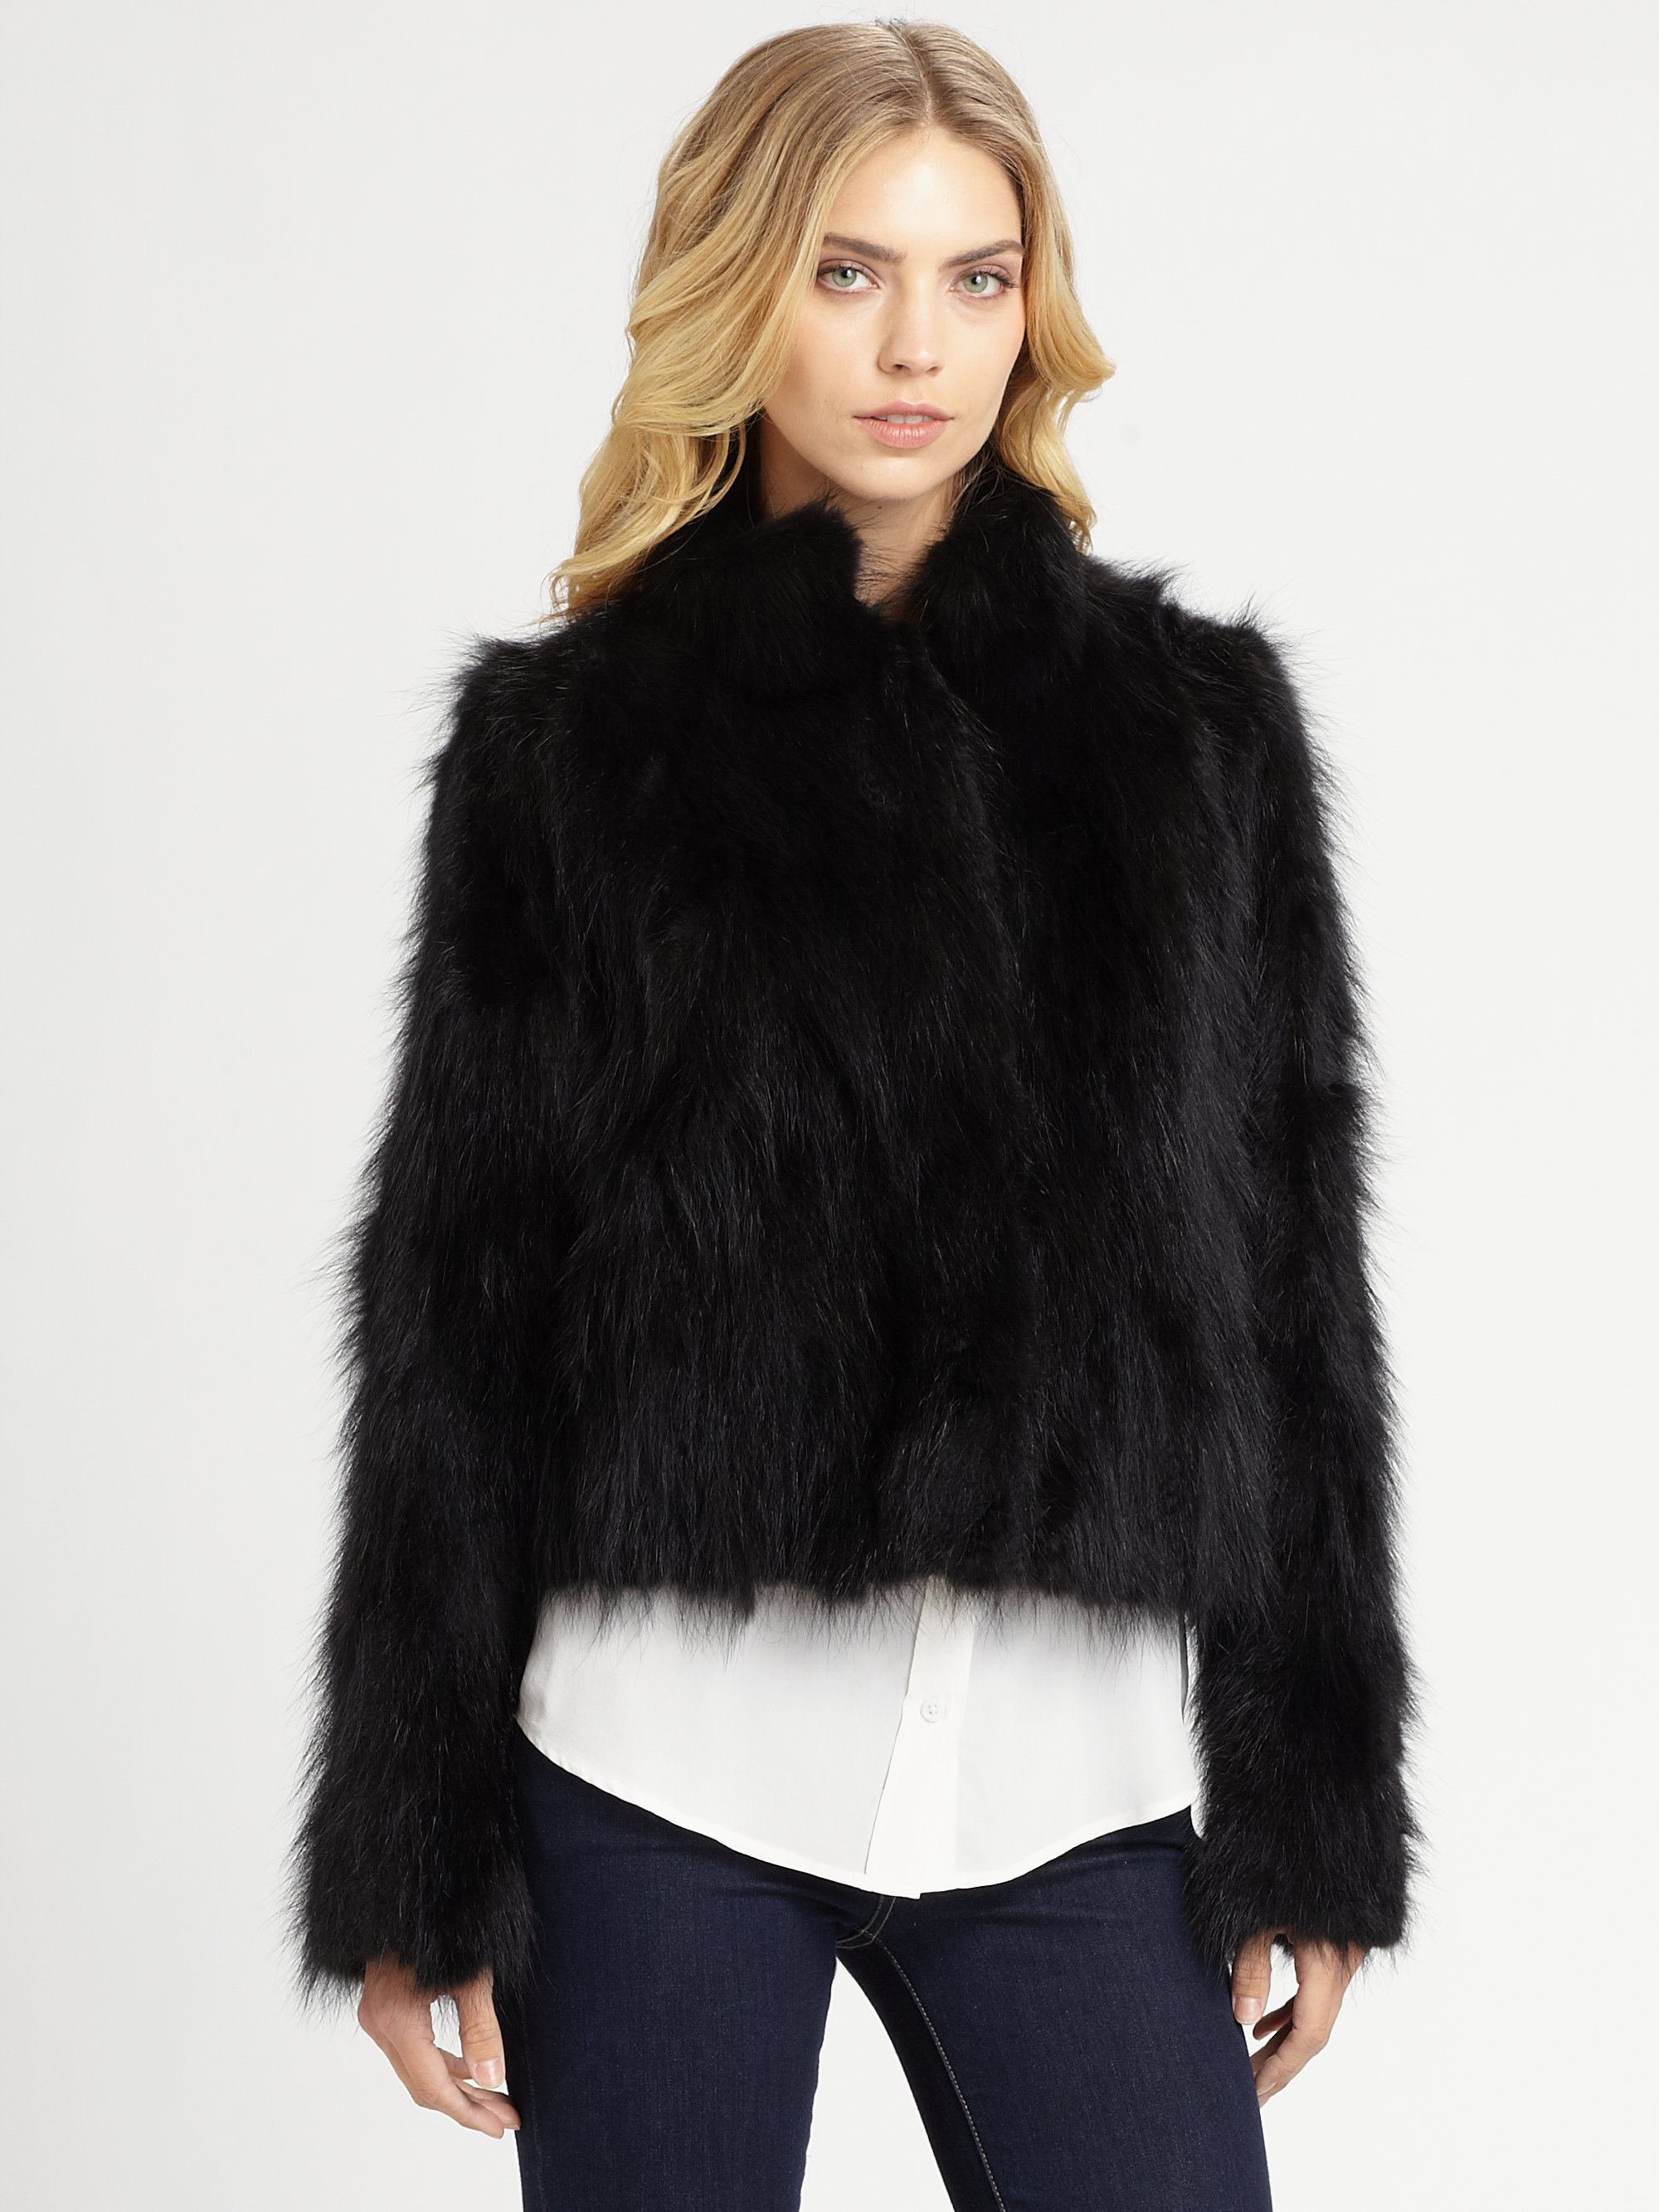 Black Fur Jacket Photo Album - Fashion Trends and Models